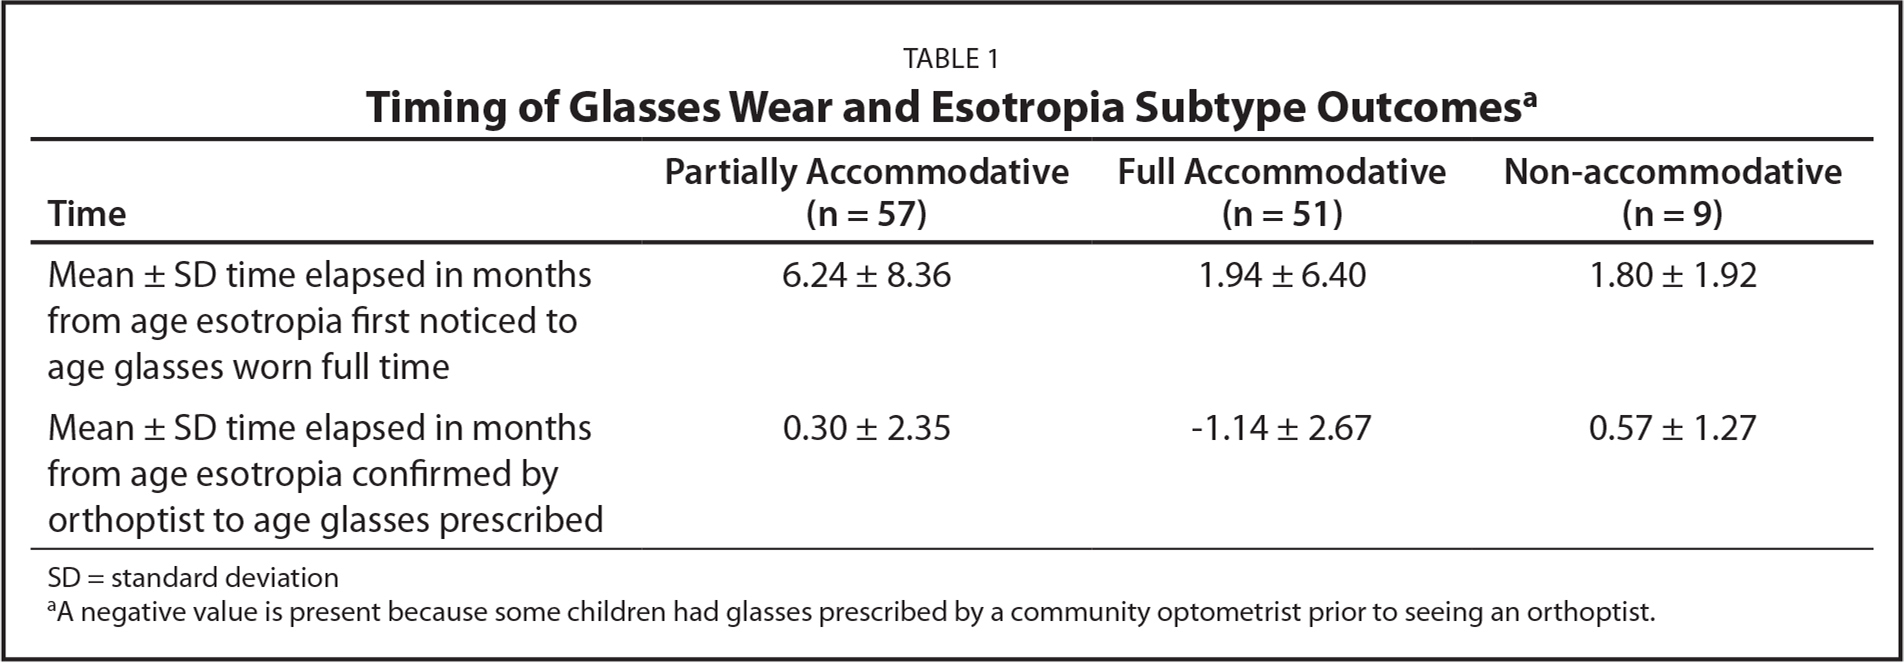 Timing of Glasses Wear and Esotropia Subtype Outcomesa